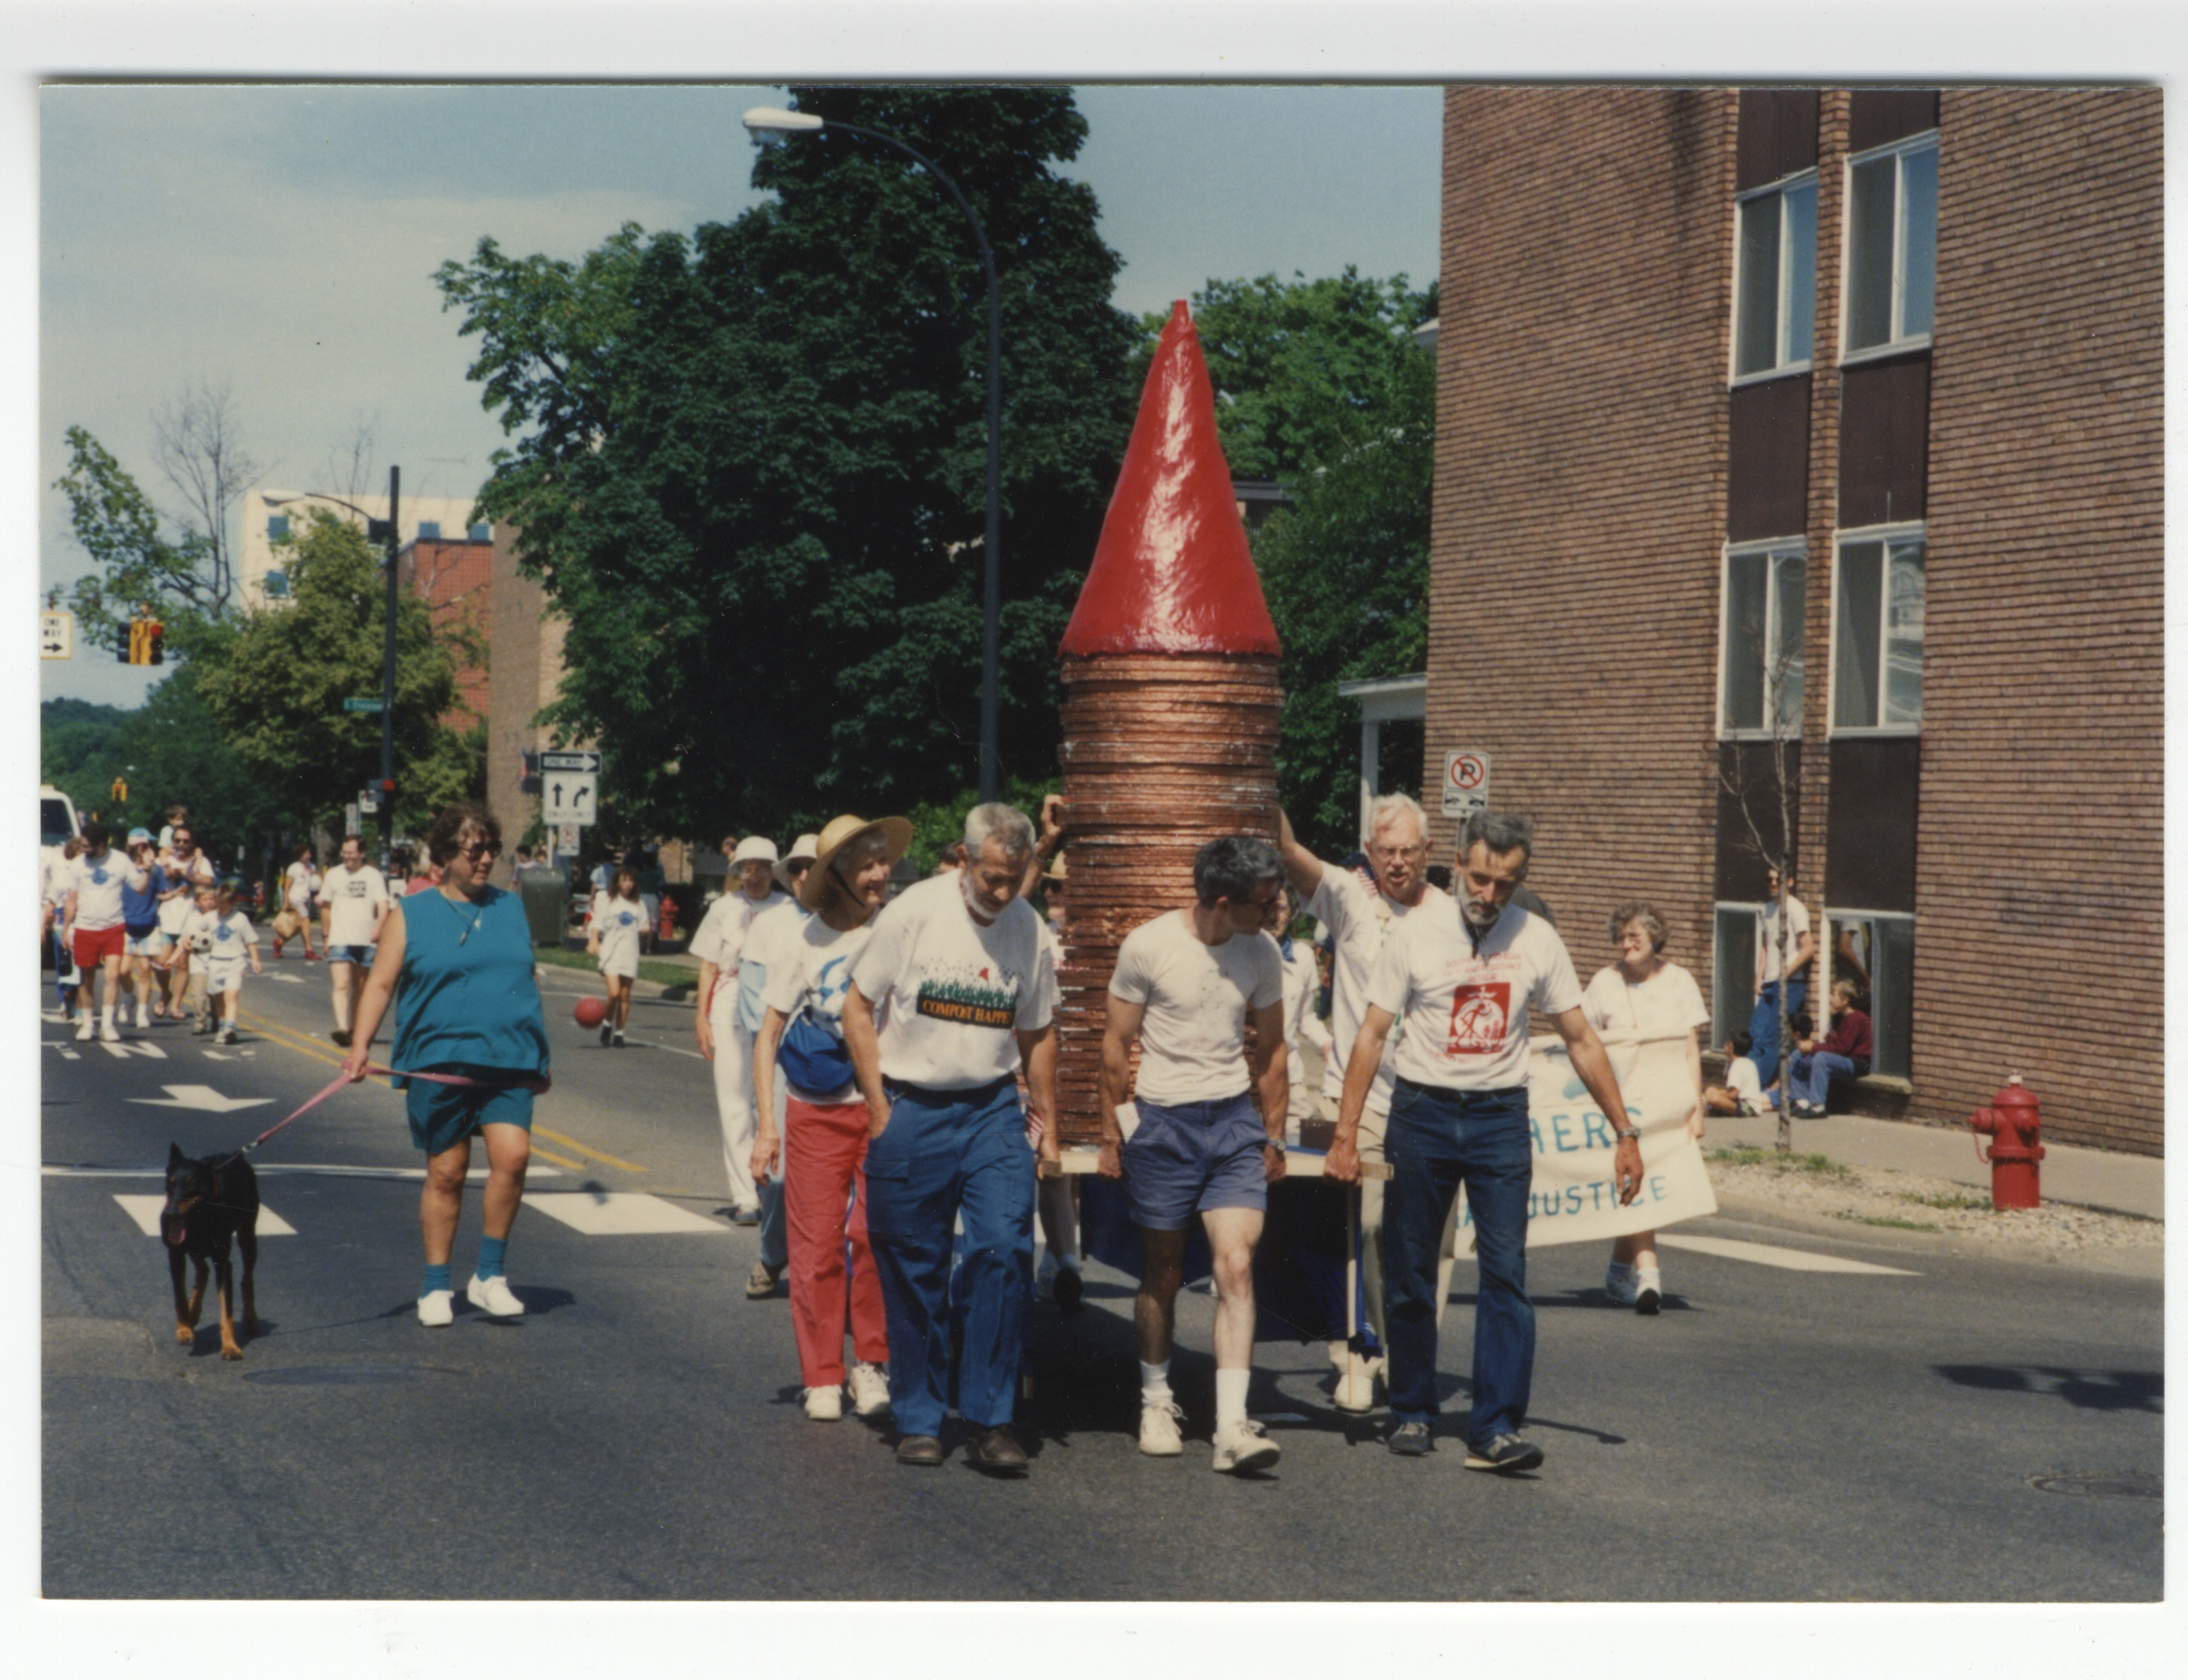 Interfaith Council for Peace and Justice: Fourth of July Parade Float, 1992 image